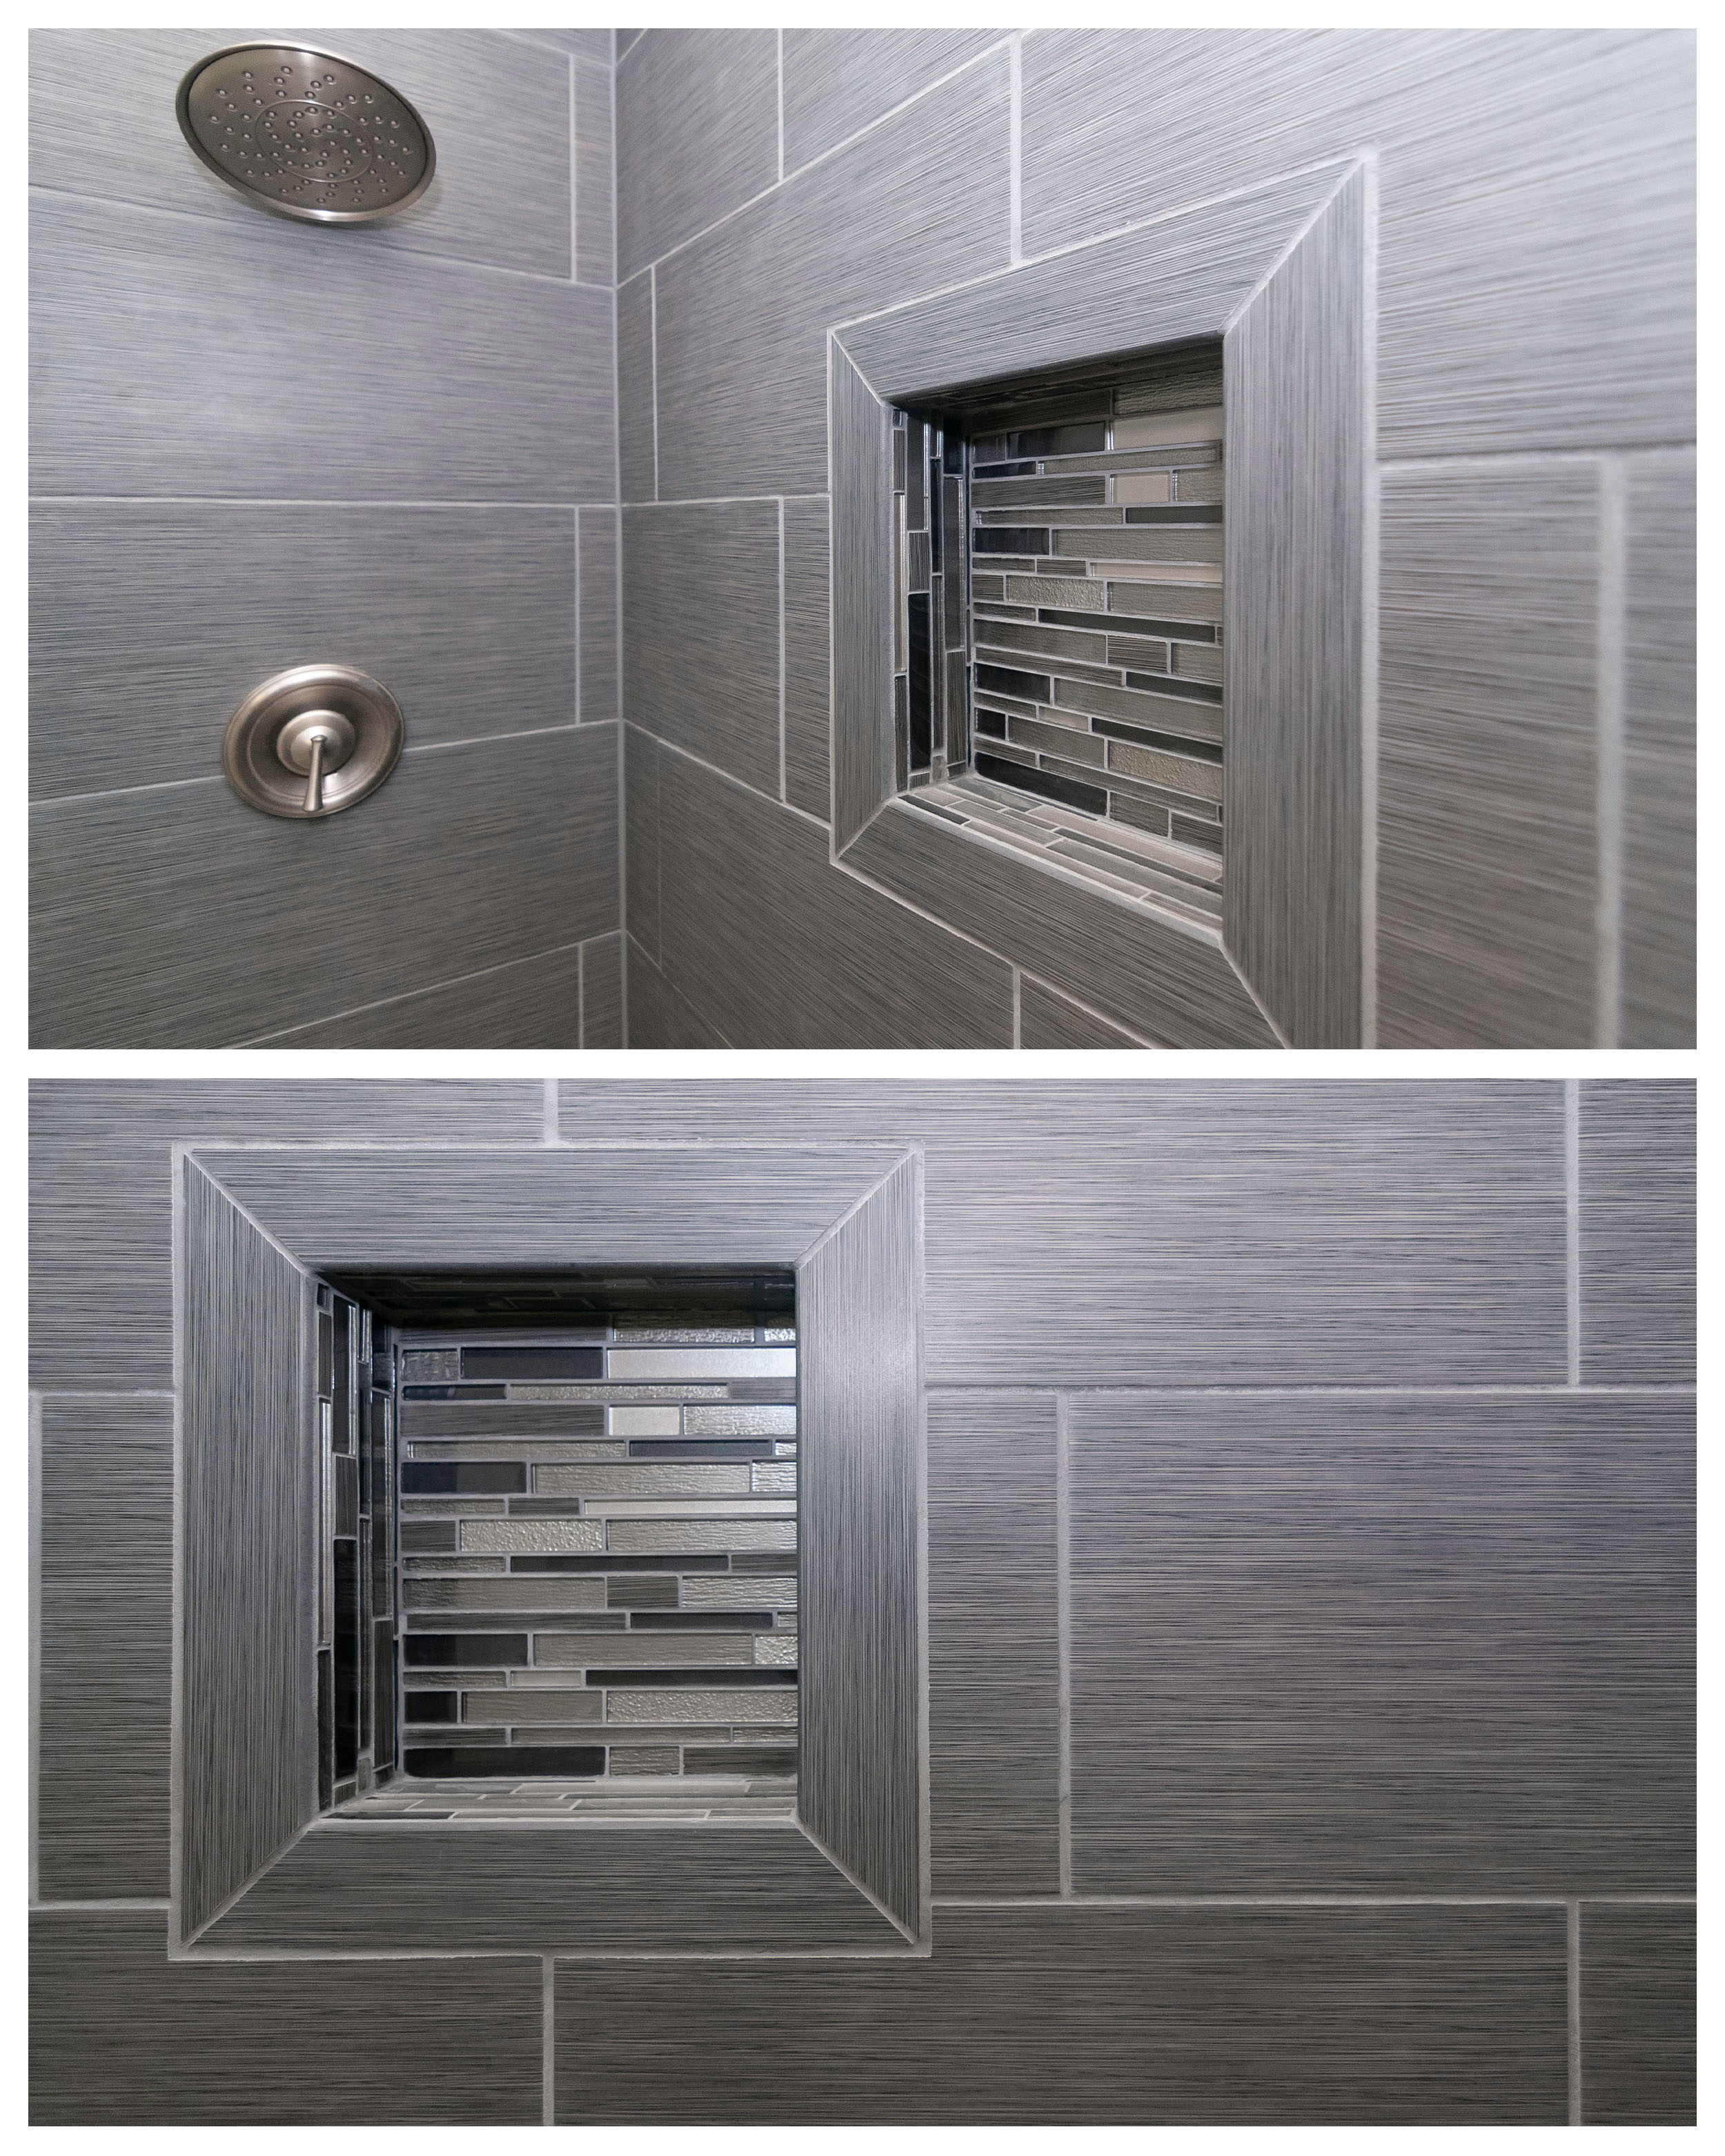 6 Harness Shower Tile Comparison.jpg